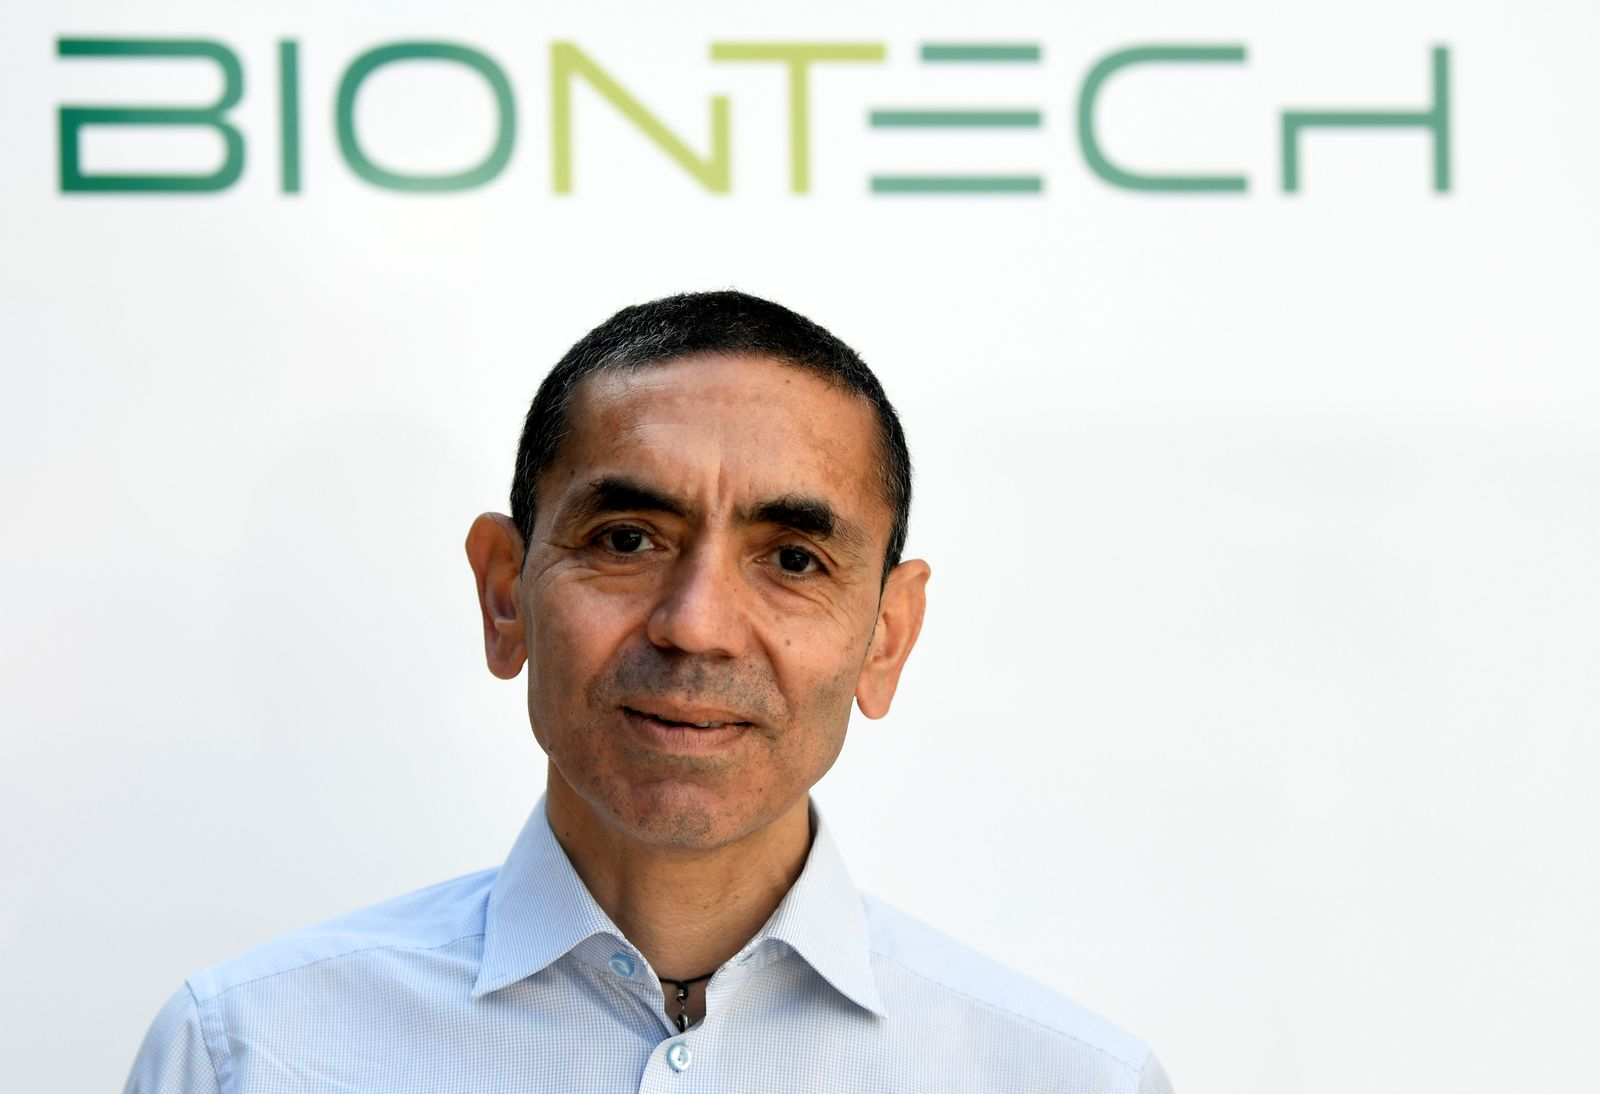 Ugur Sahin, CEO and co-founder of German biotech firm BioNTech, is interviewed by journalists in Marburg